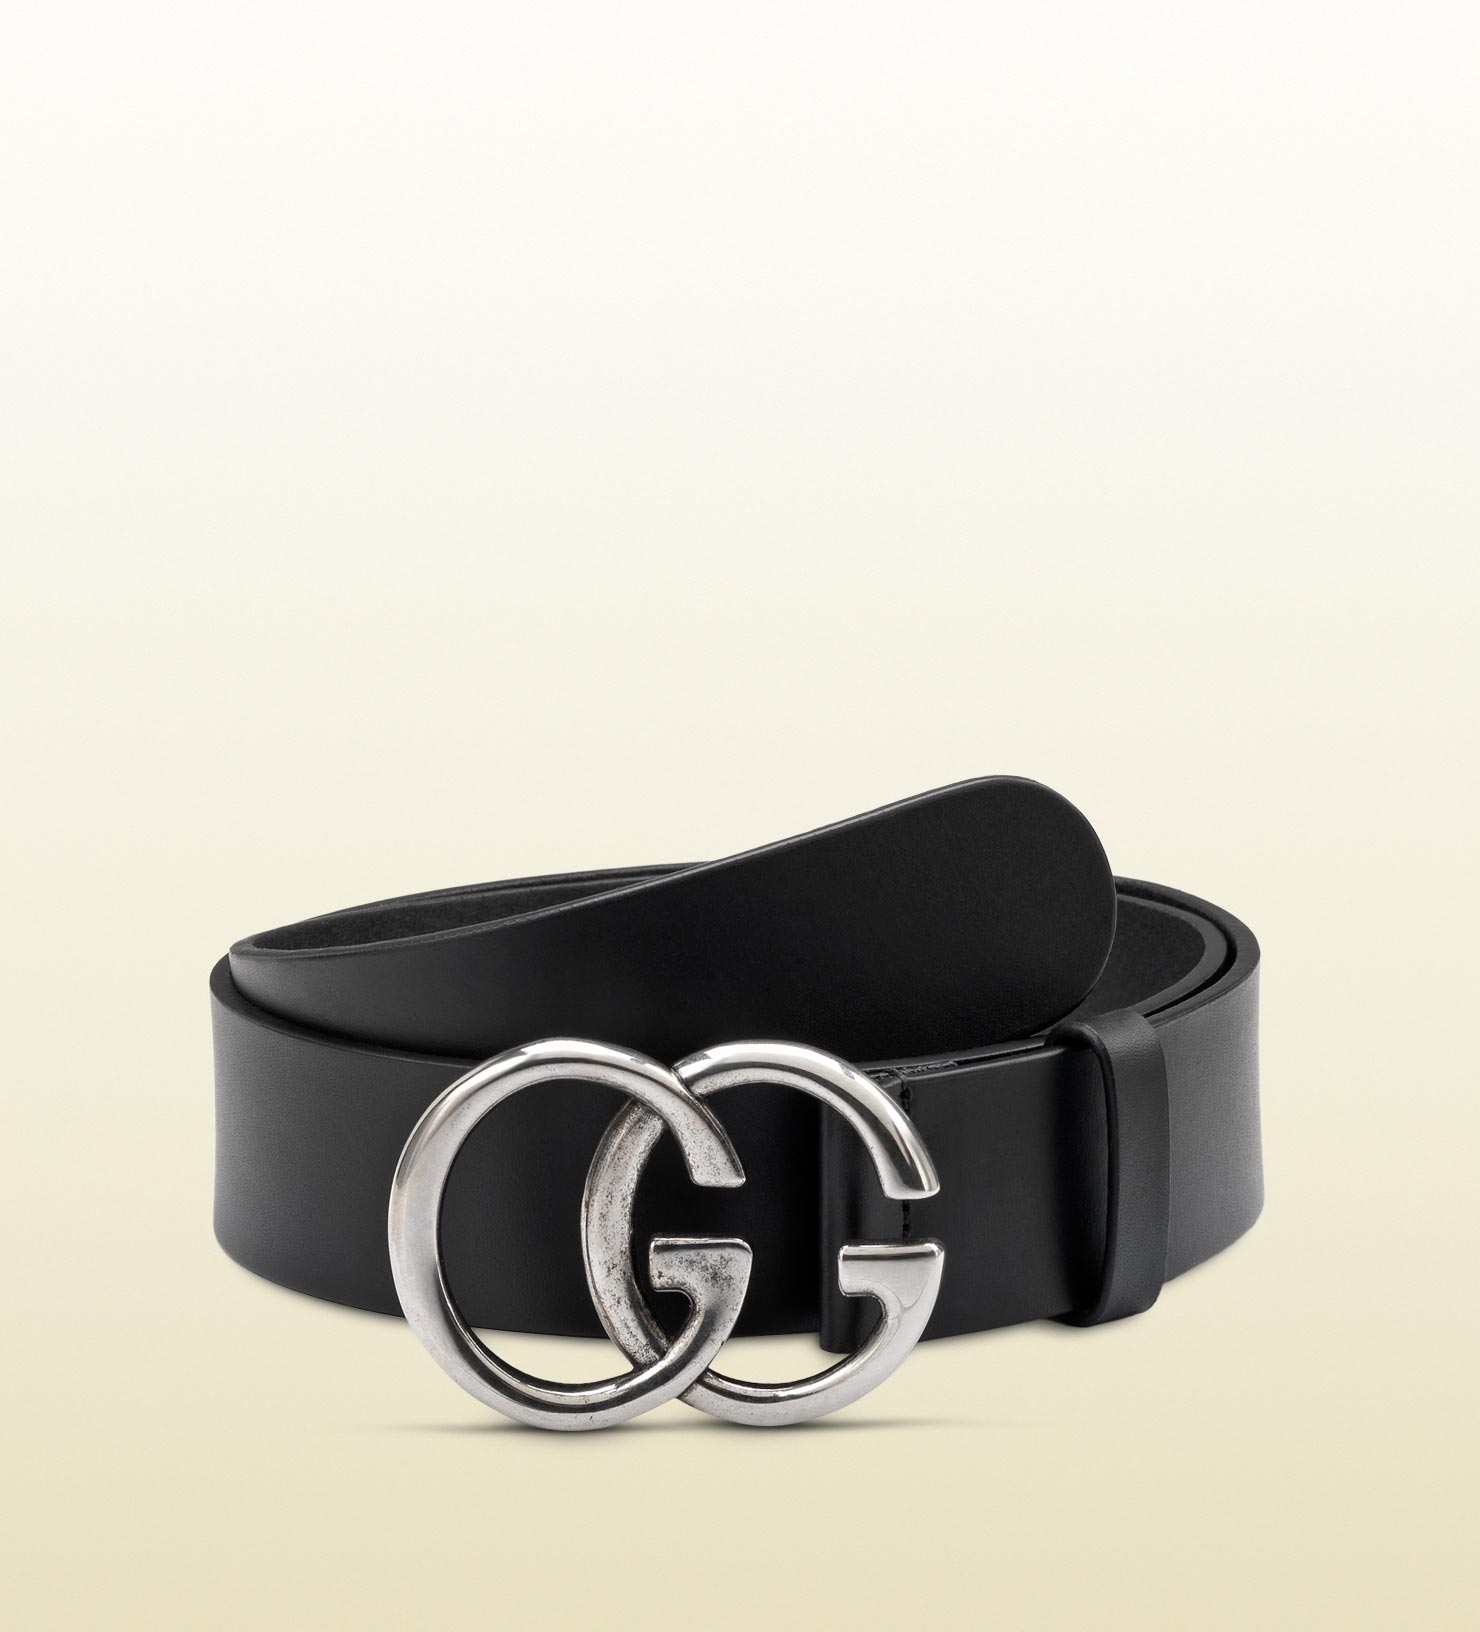 Lyst - Gucci Belt With Double G Buckle in Black for Men 7b125b2f835